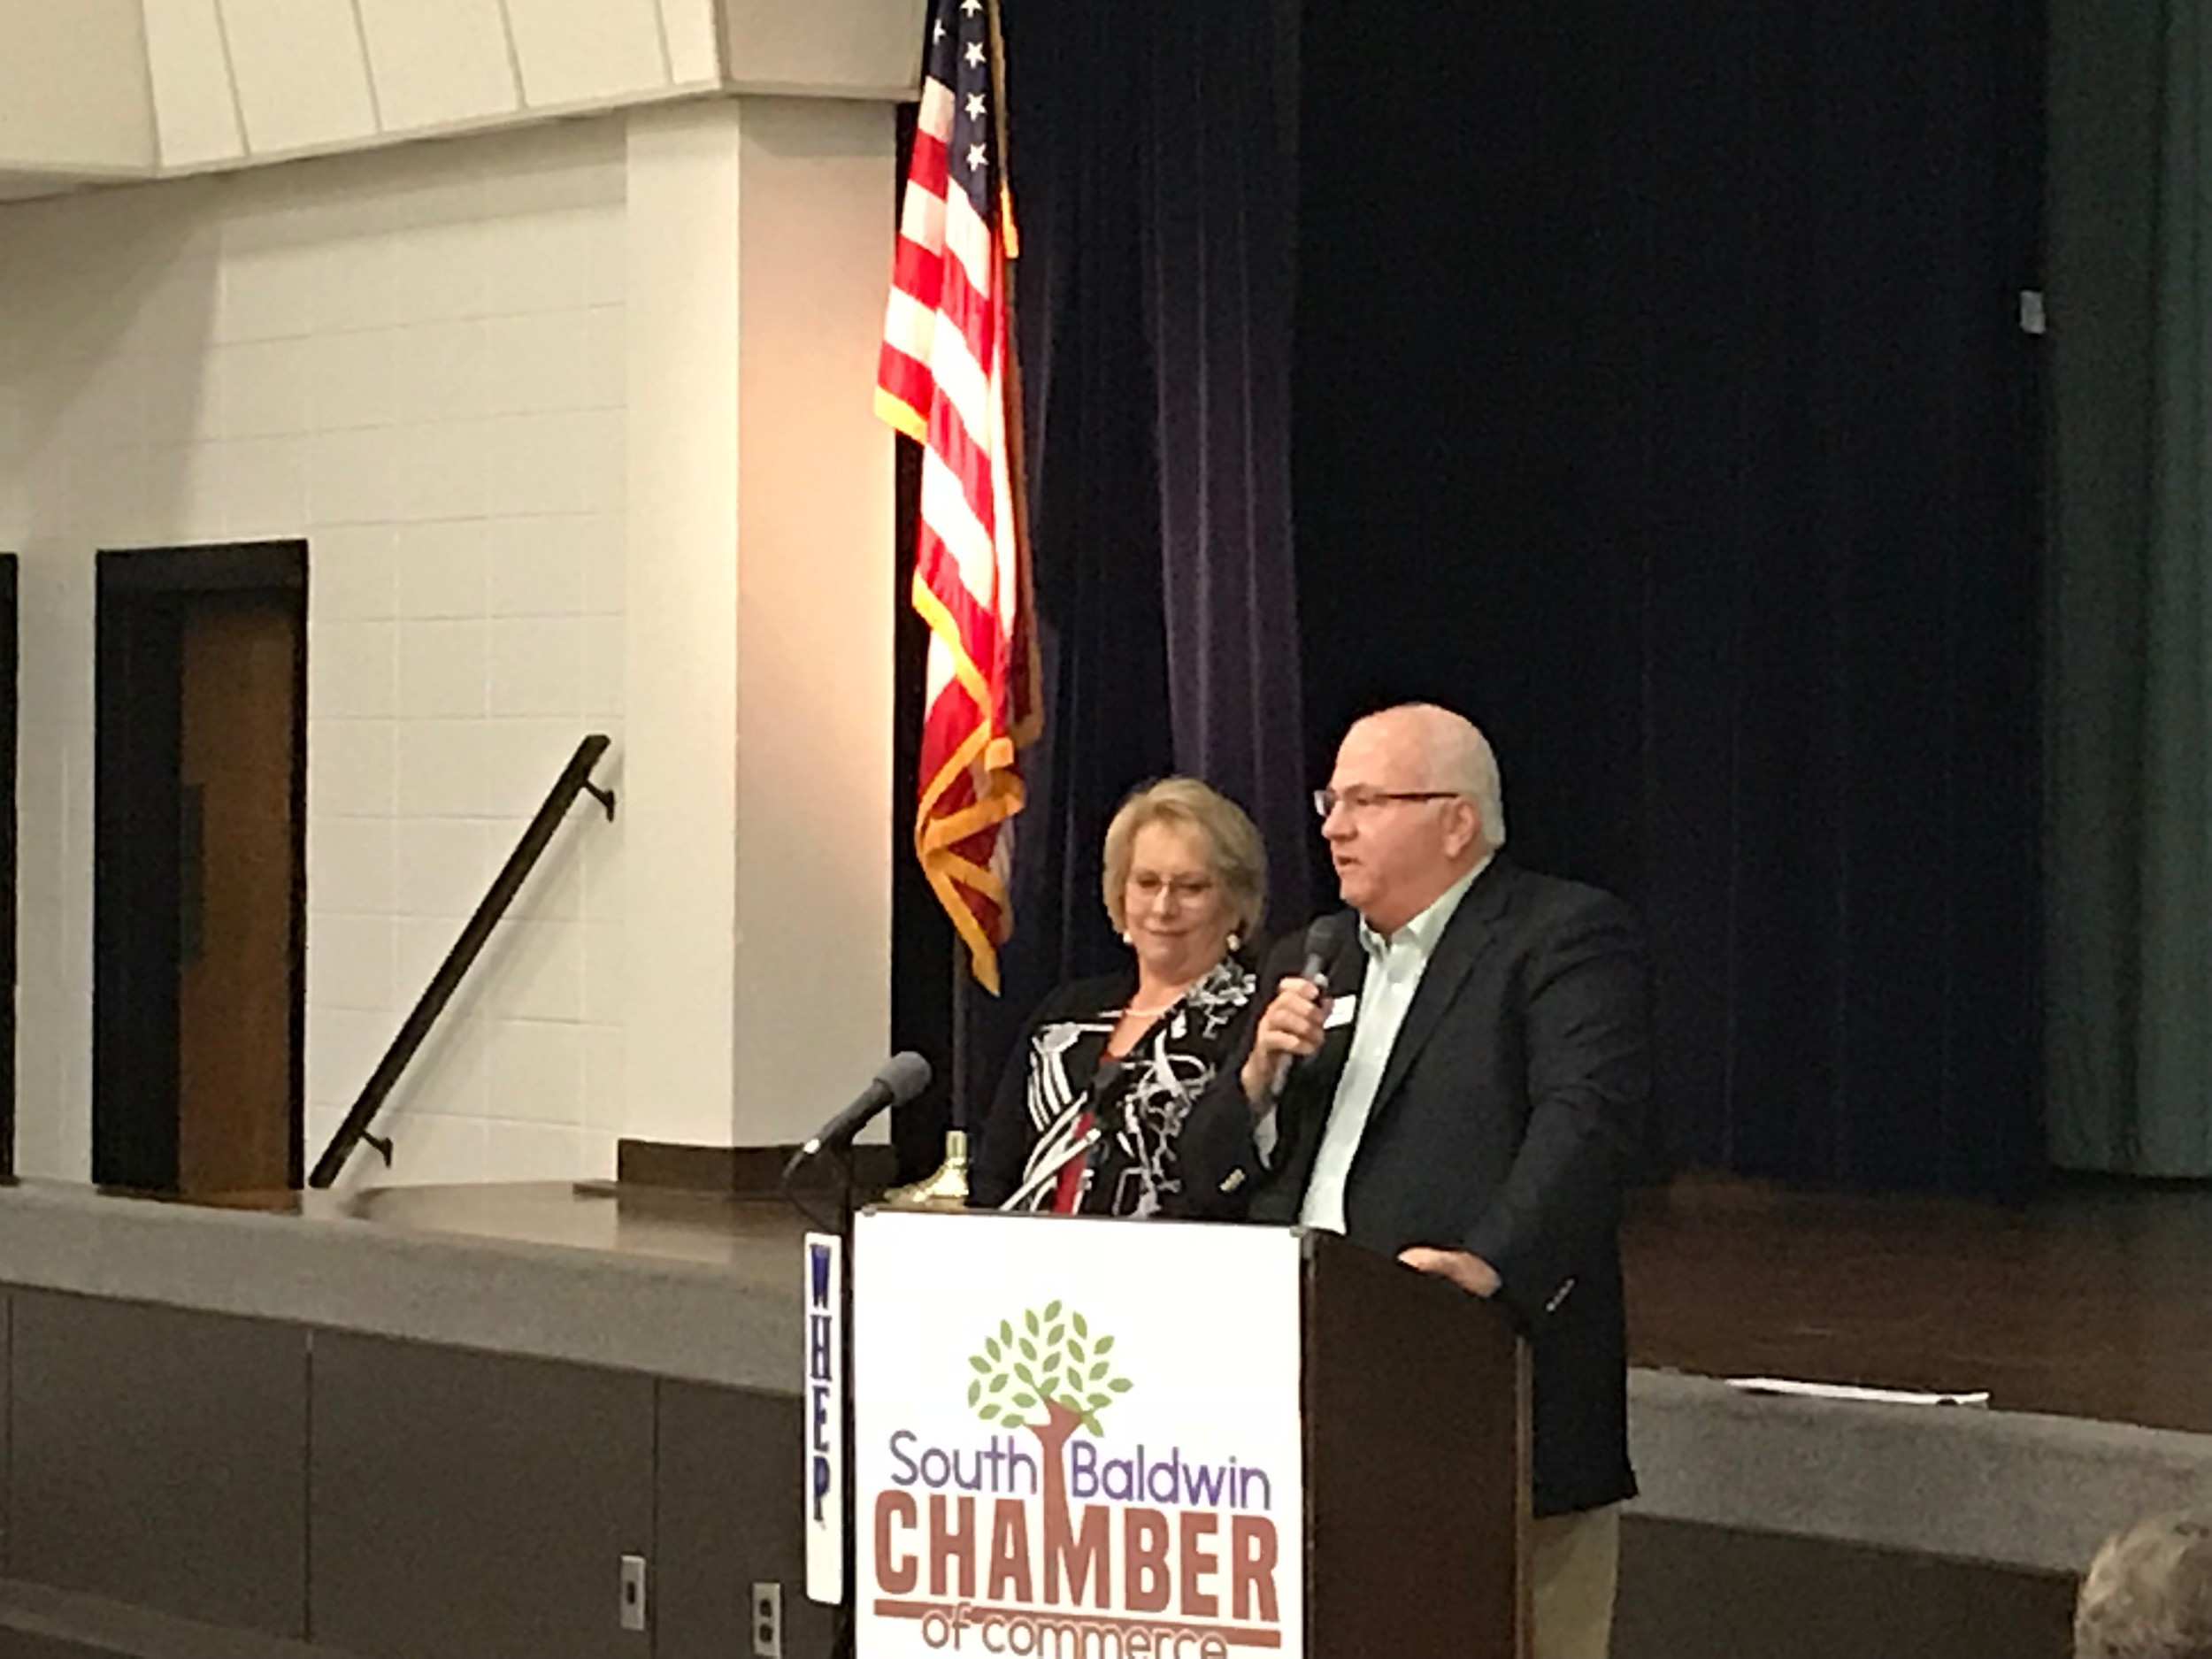 President and CEO of South Baldwin Chamber Donna Watts & CEO of Vulkan/Chairman of Gateway Initiative Tommy Lee.